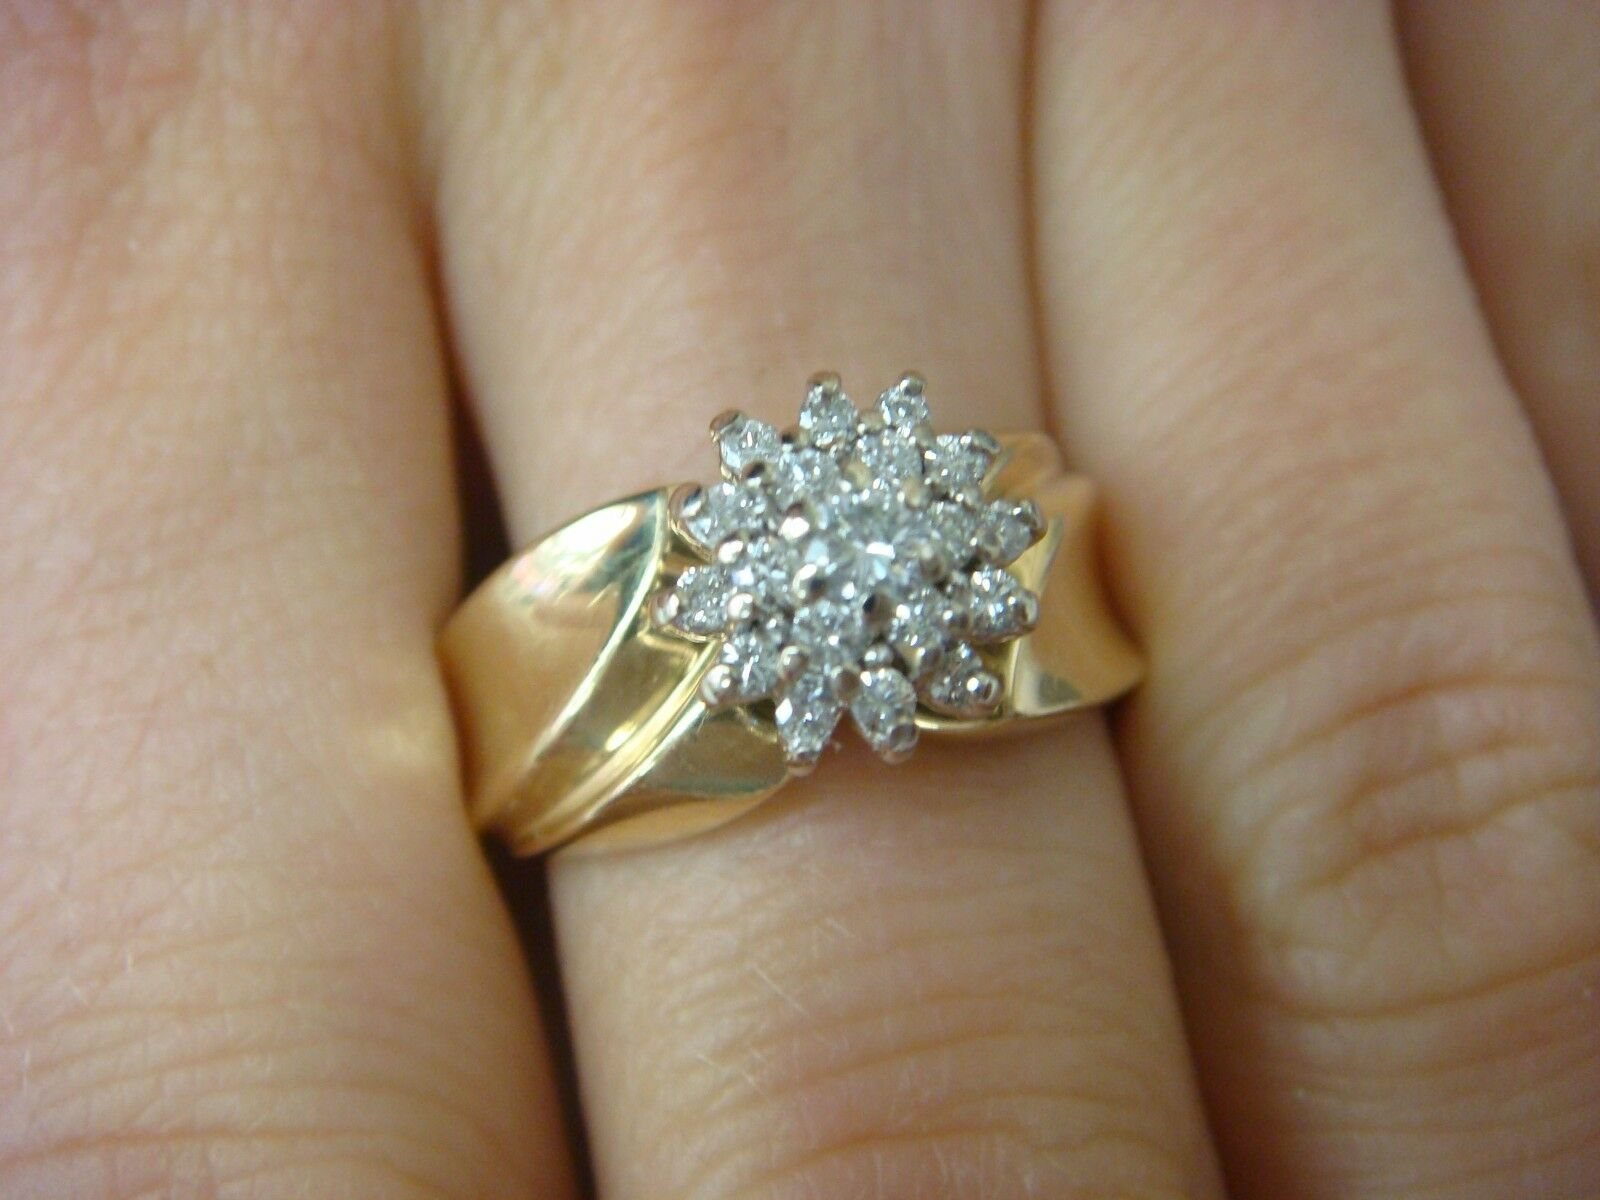 14K YELLOW gold, APPROX. 0.30CT T.W. GENUINE DIAMONDS, LADIES RING, 5.8 GRAMS